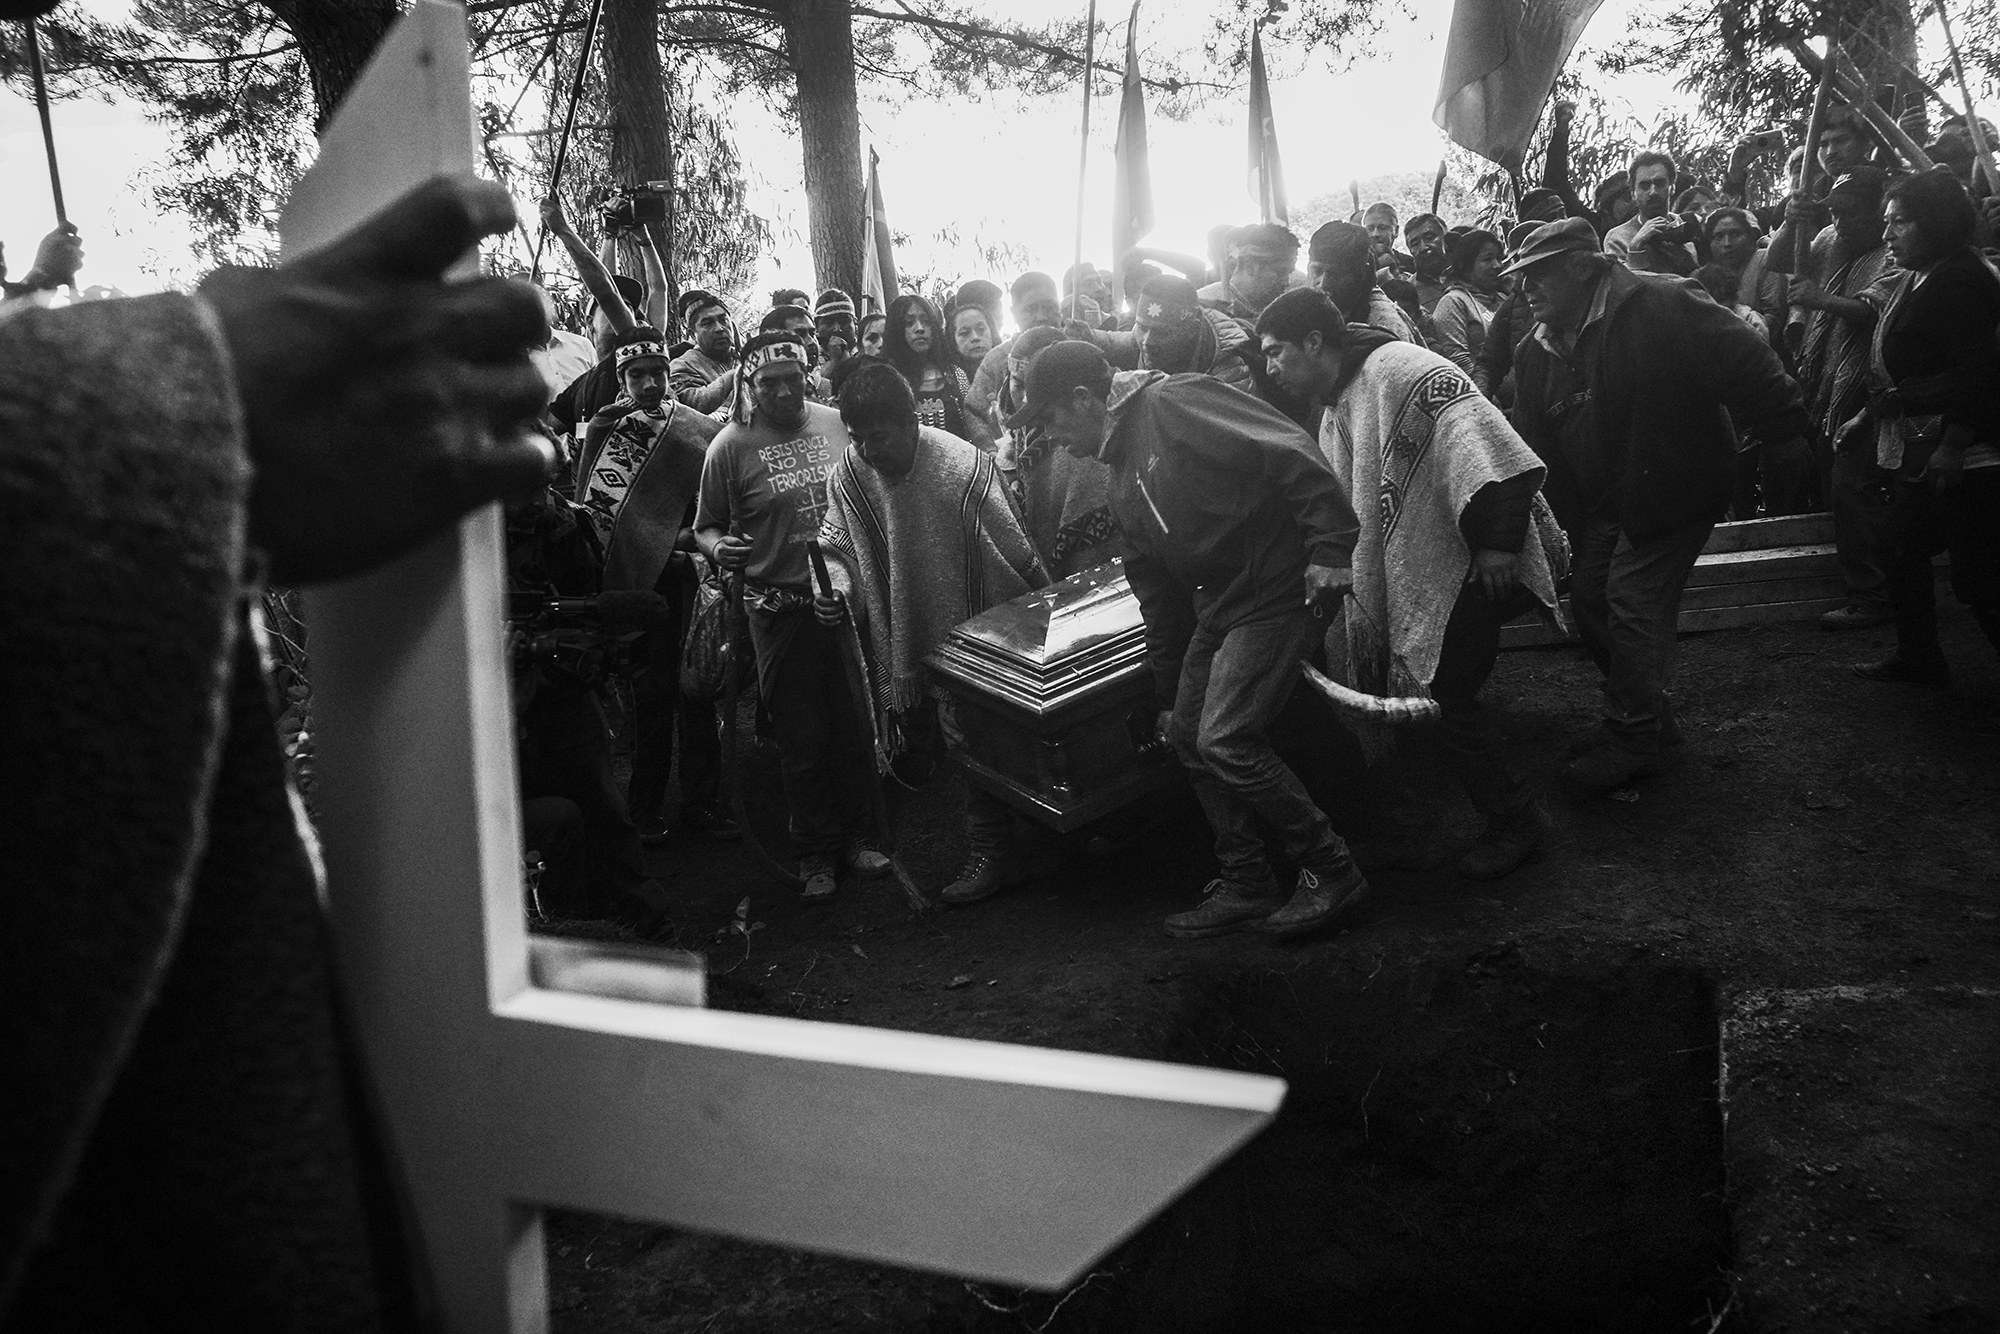 Pallbearers carry coffin through crowd of mourners